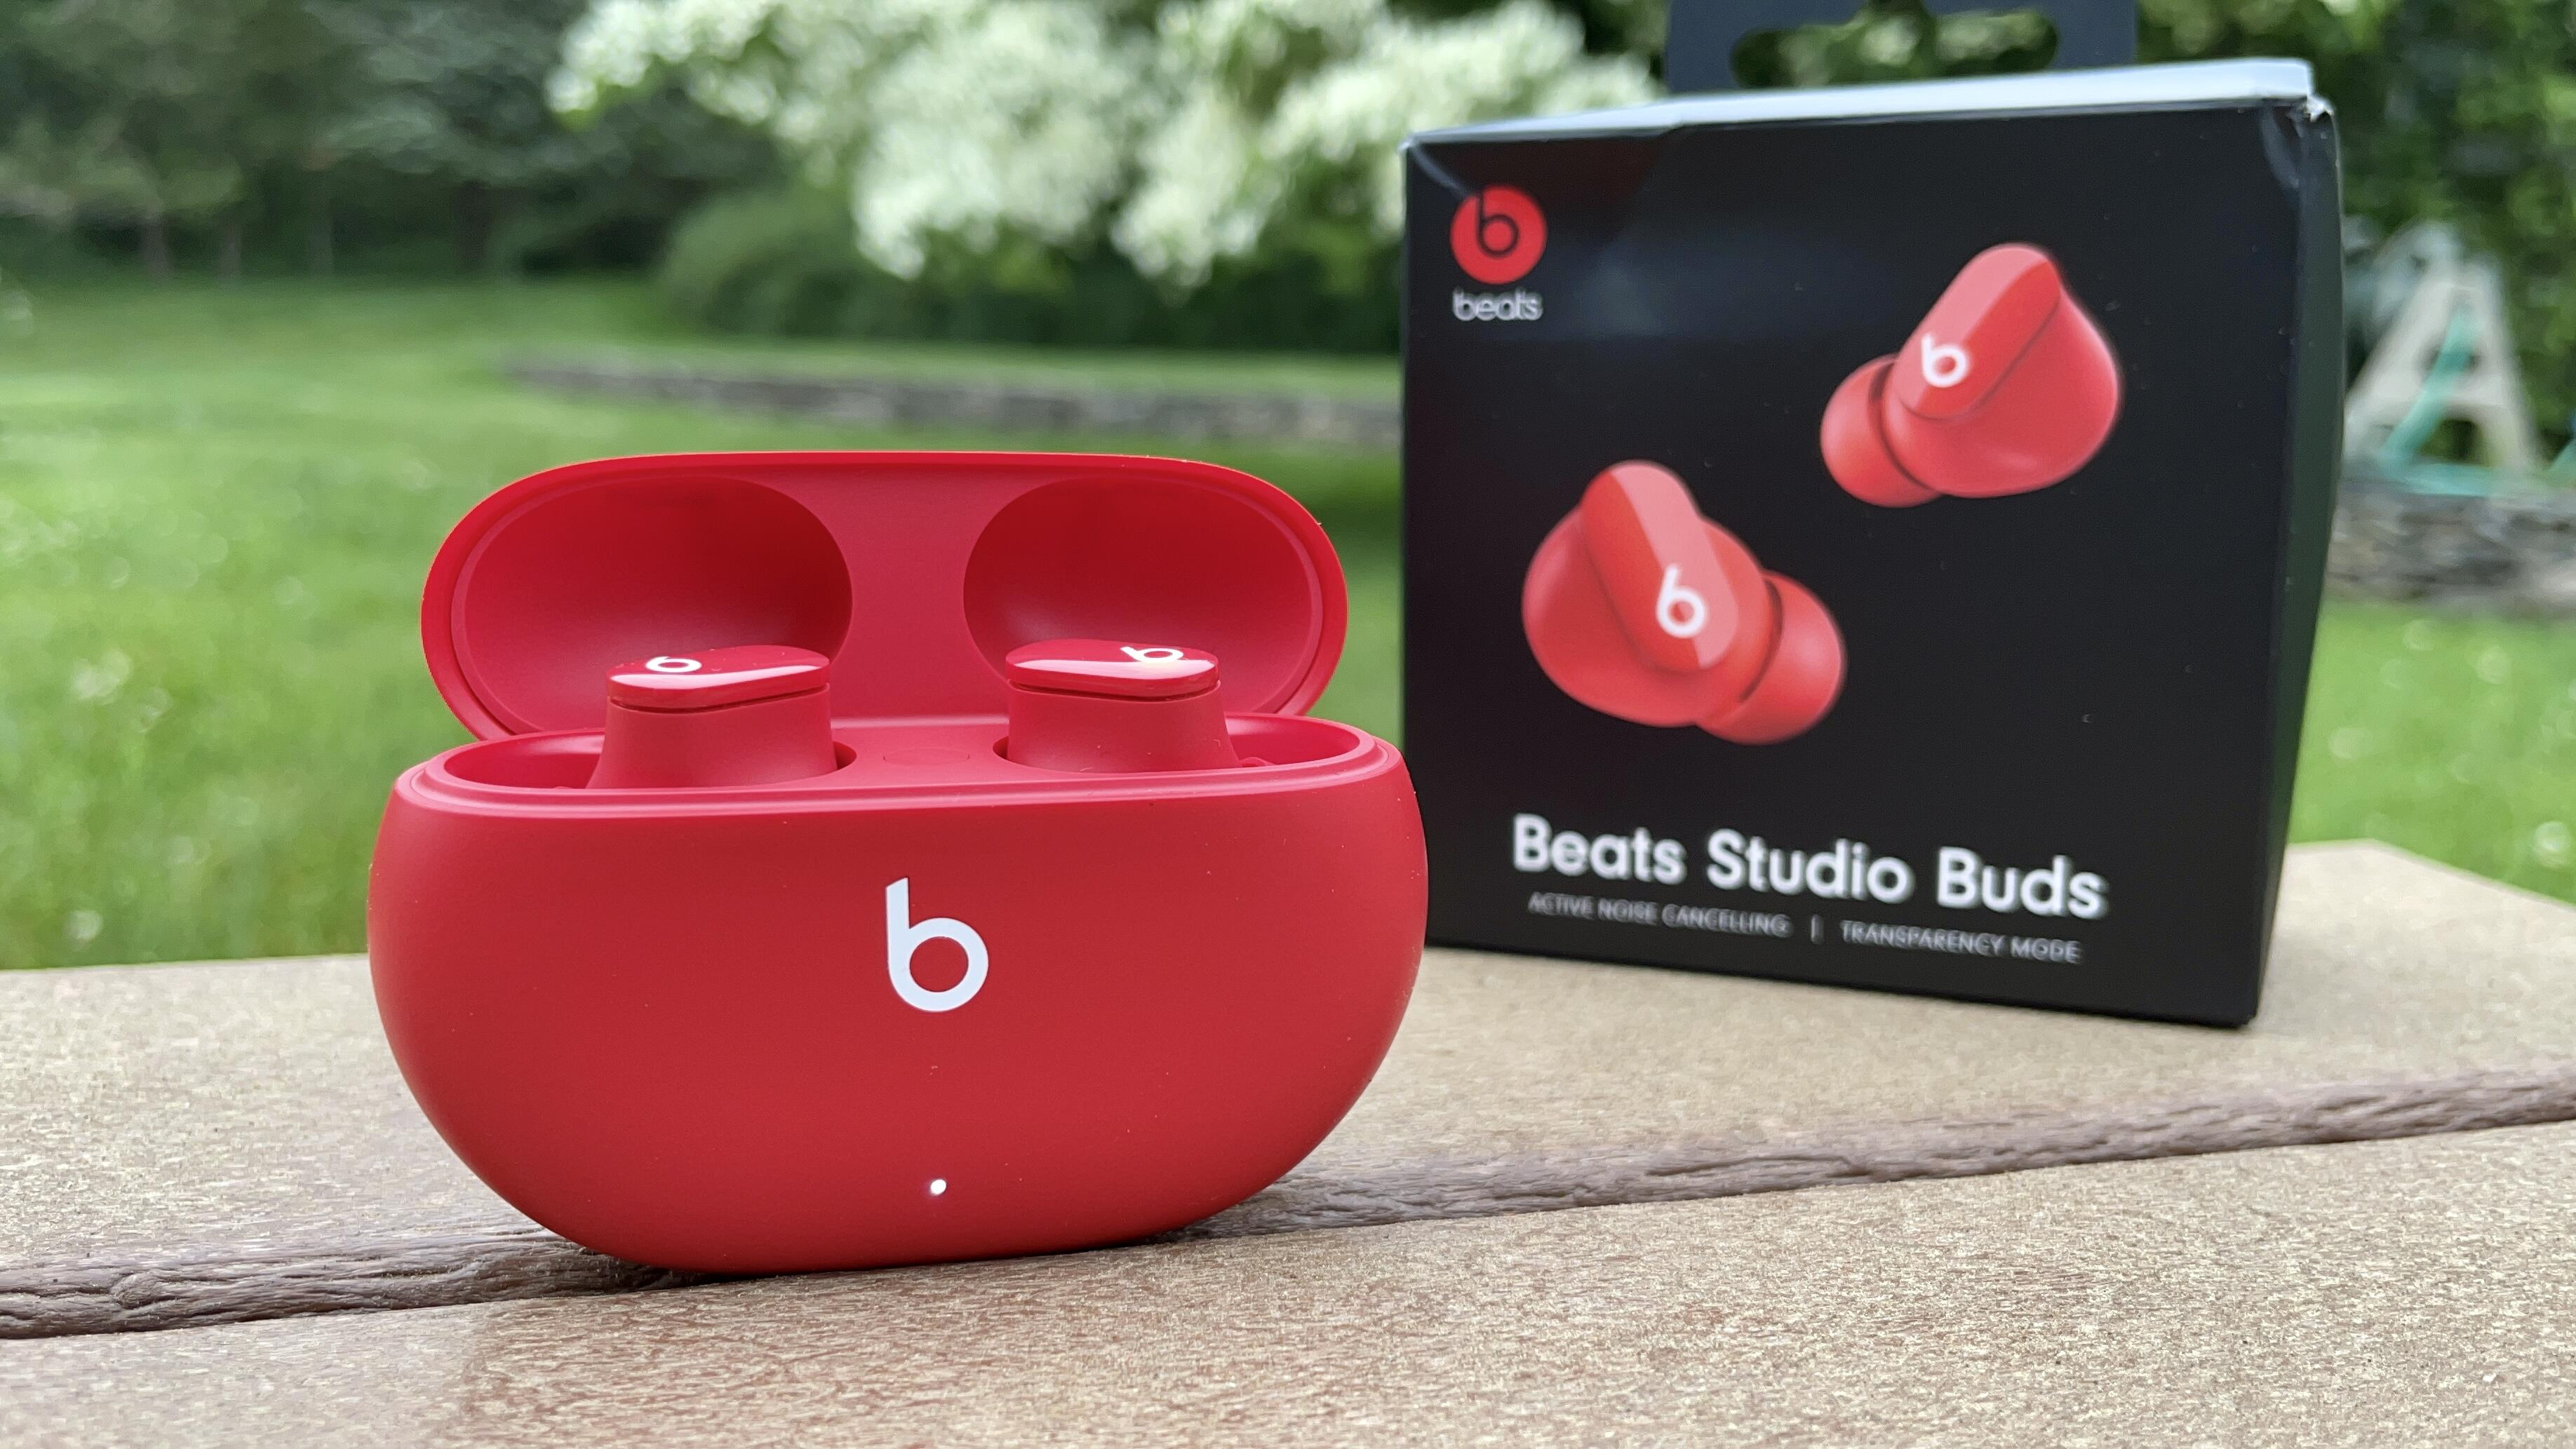 beats-studio-buds-red-with-box